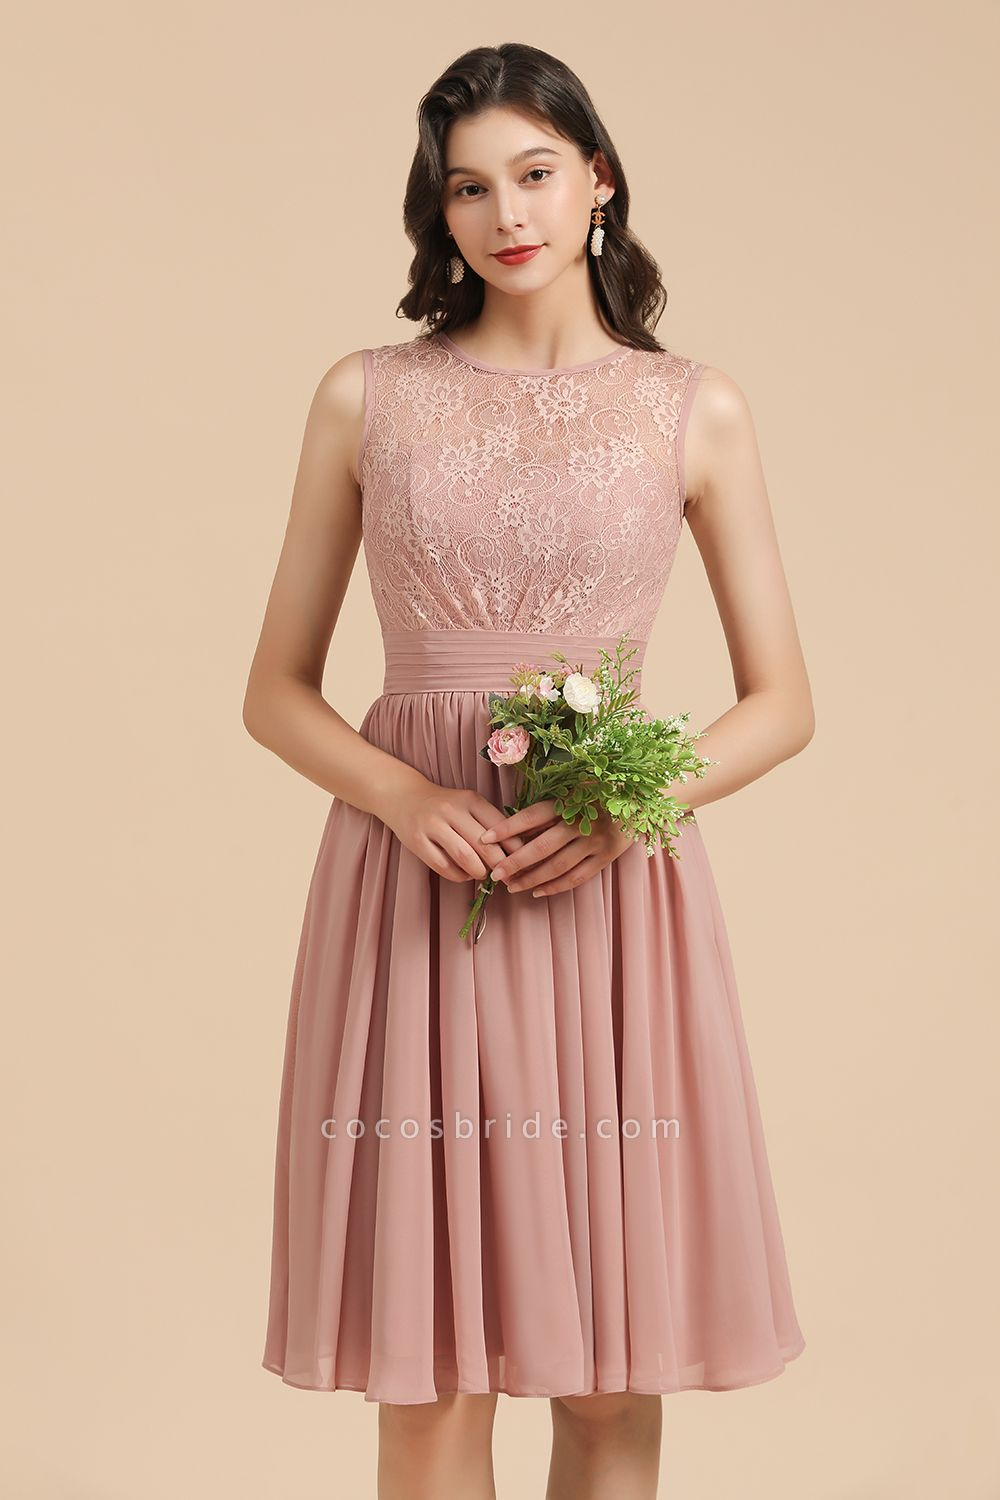 BM2008 Simple Lace Straps Knee Length Short Bridesmaid Dress